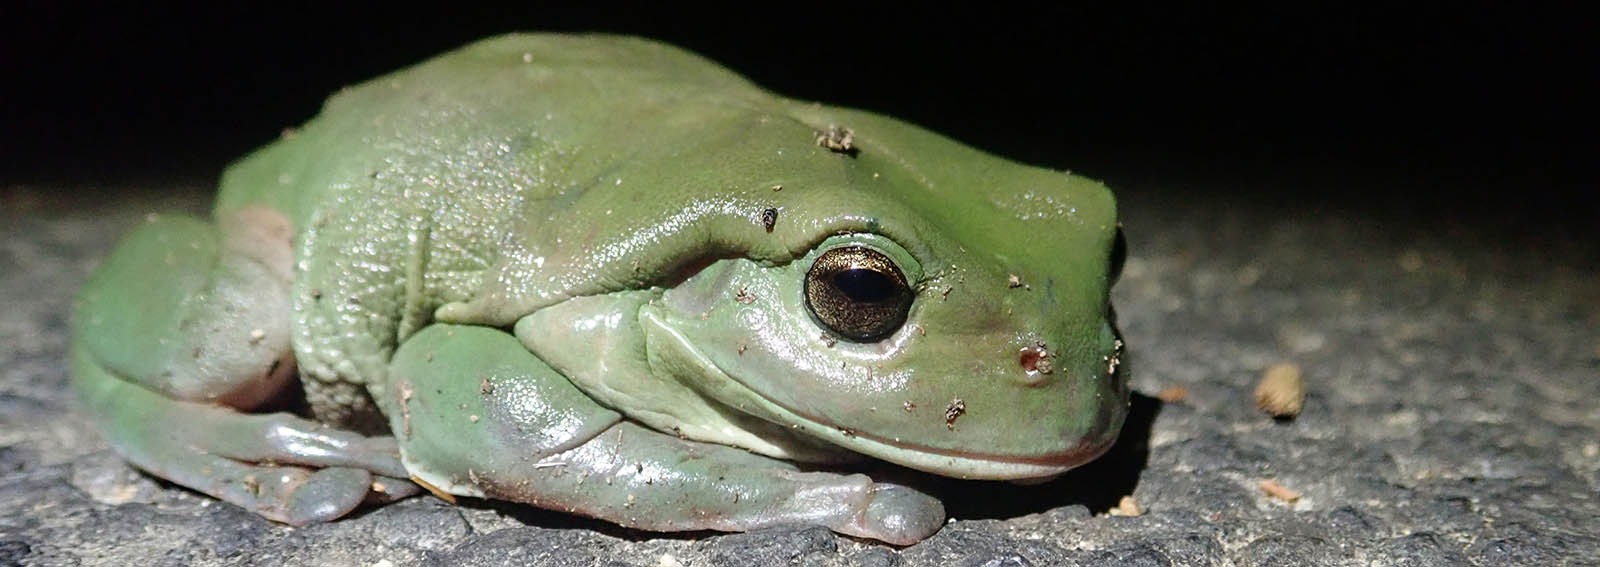 Green Tree Frog (image by Damon Ramsey)